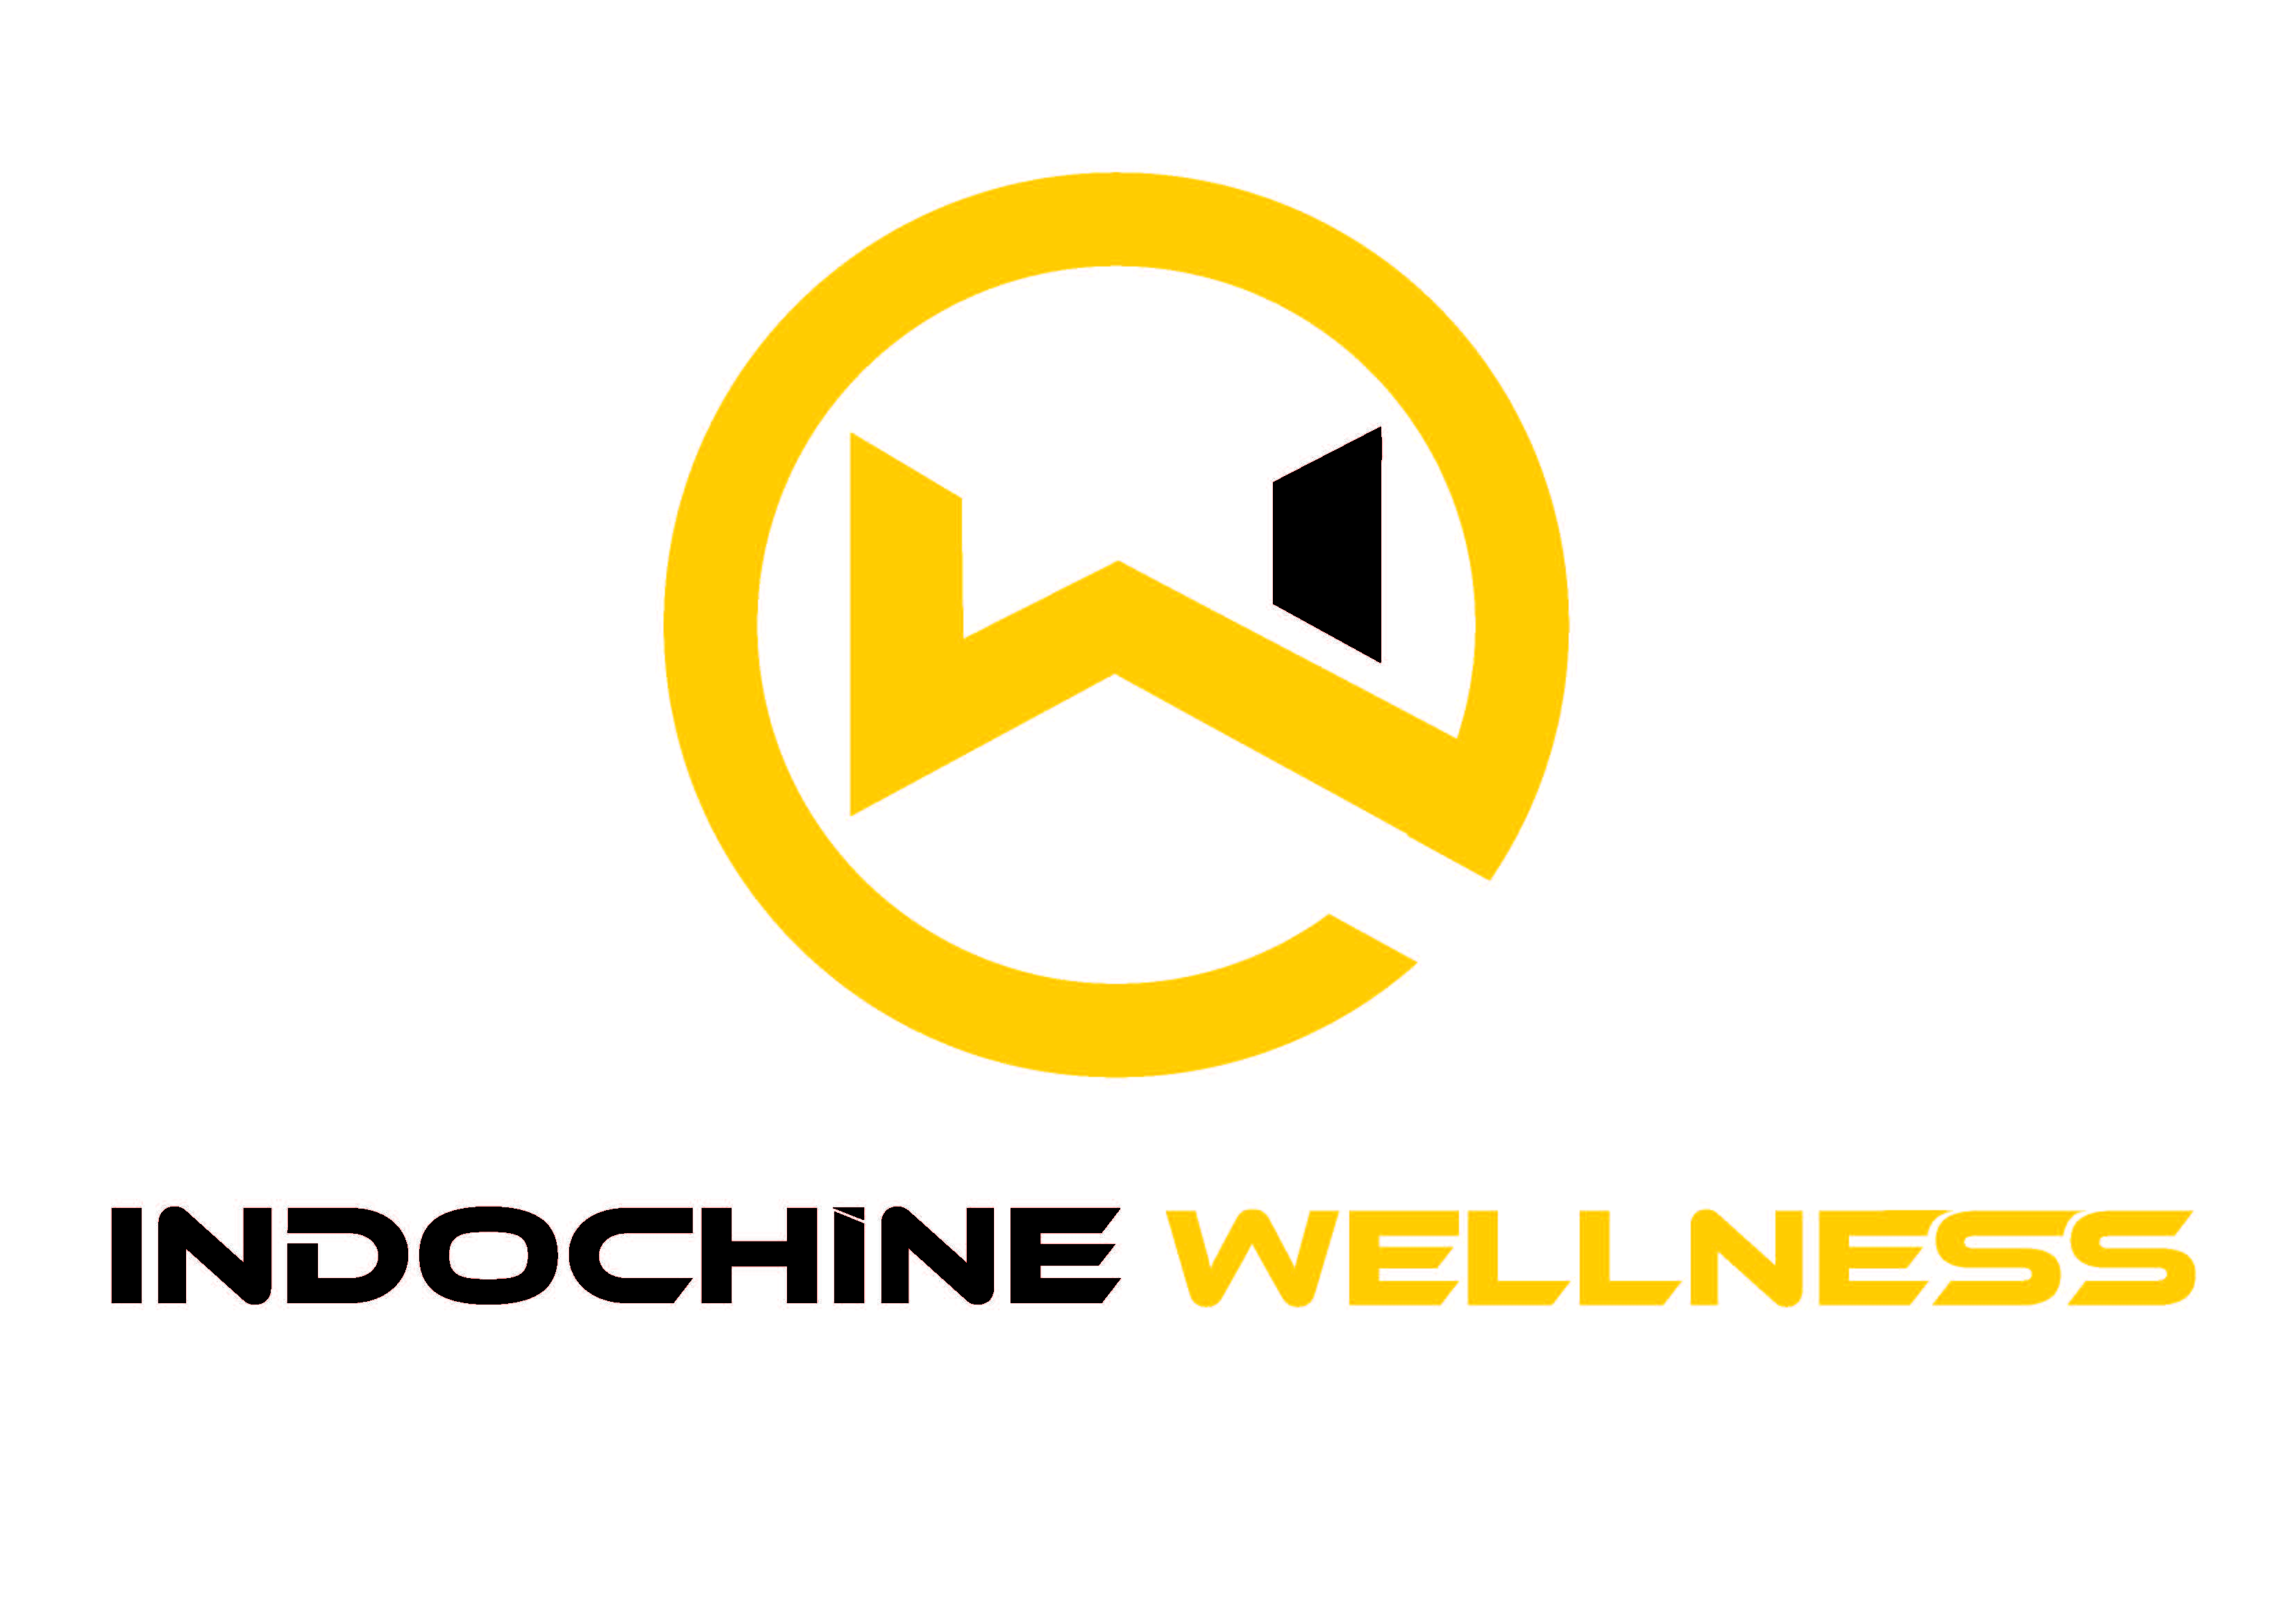 Indochine Wellness